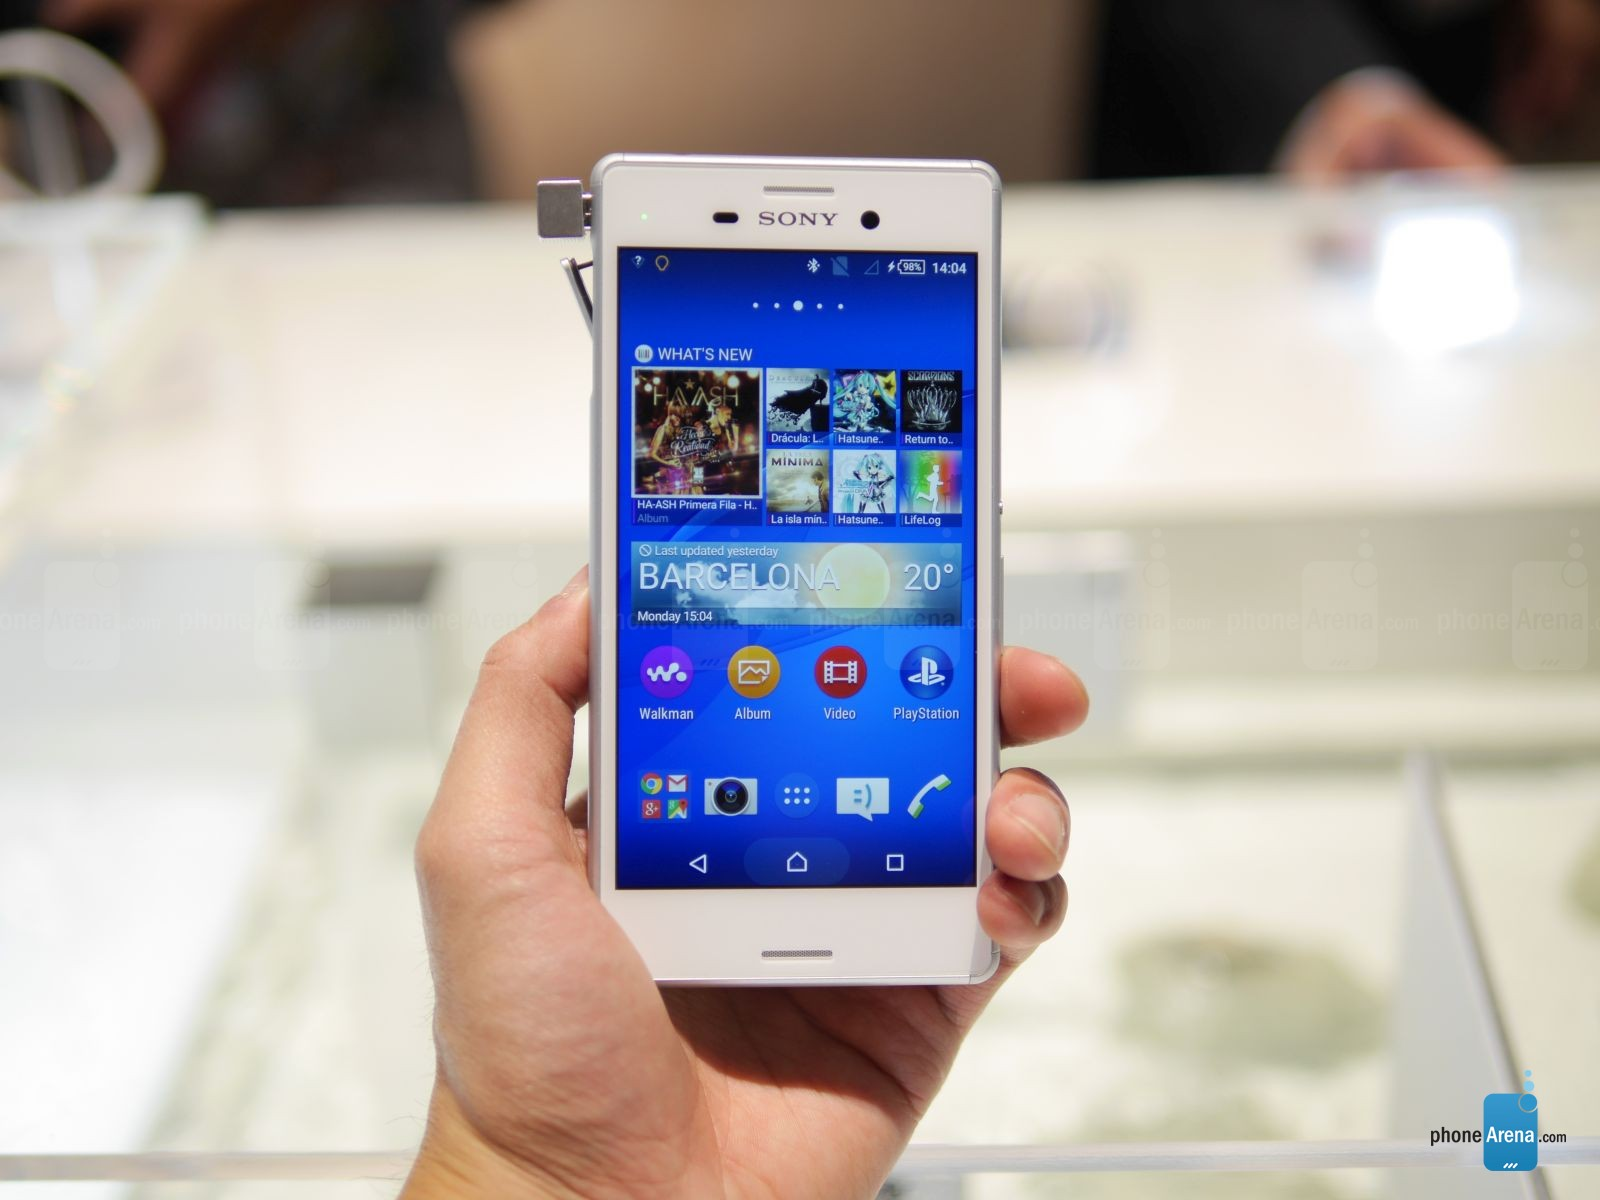 Sony-Xperia-M4-Aqua-hands-on 2